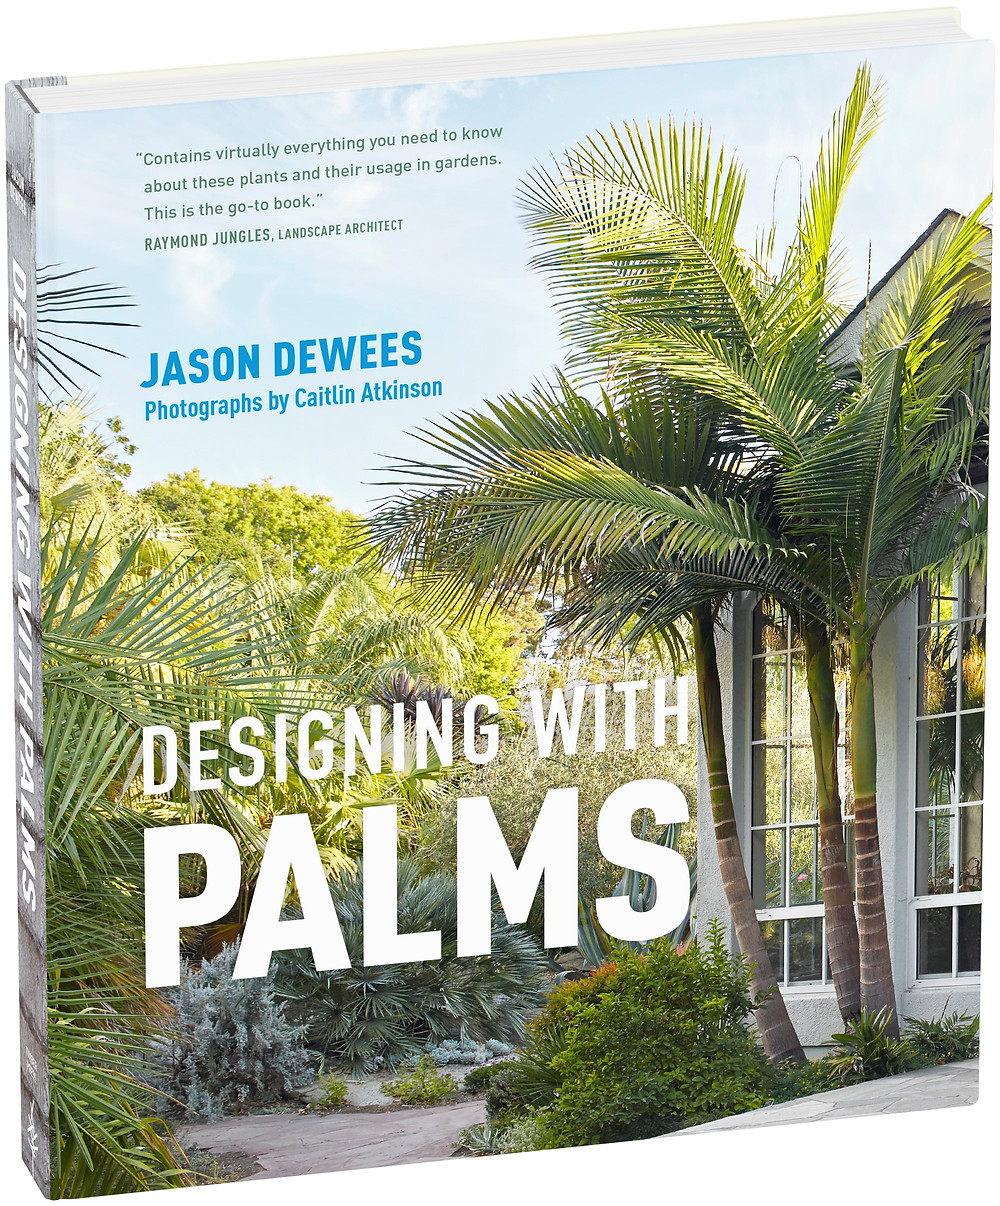 Designing with Palms, written by horticulturist and palm expert Jason Dewees.